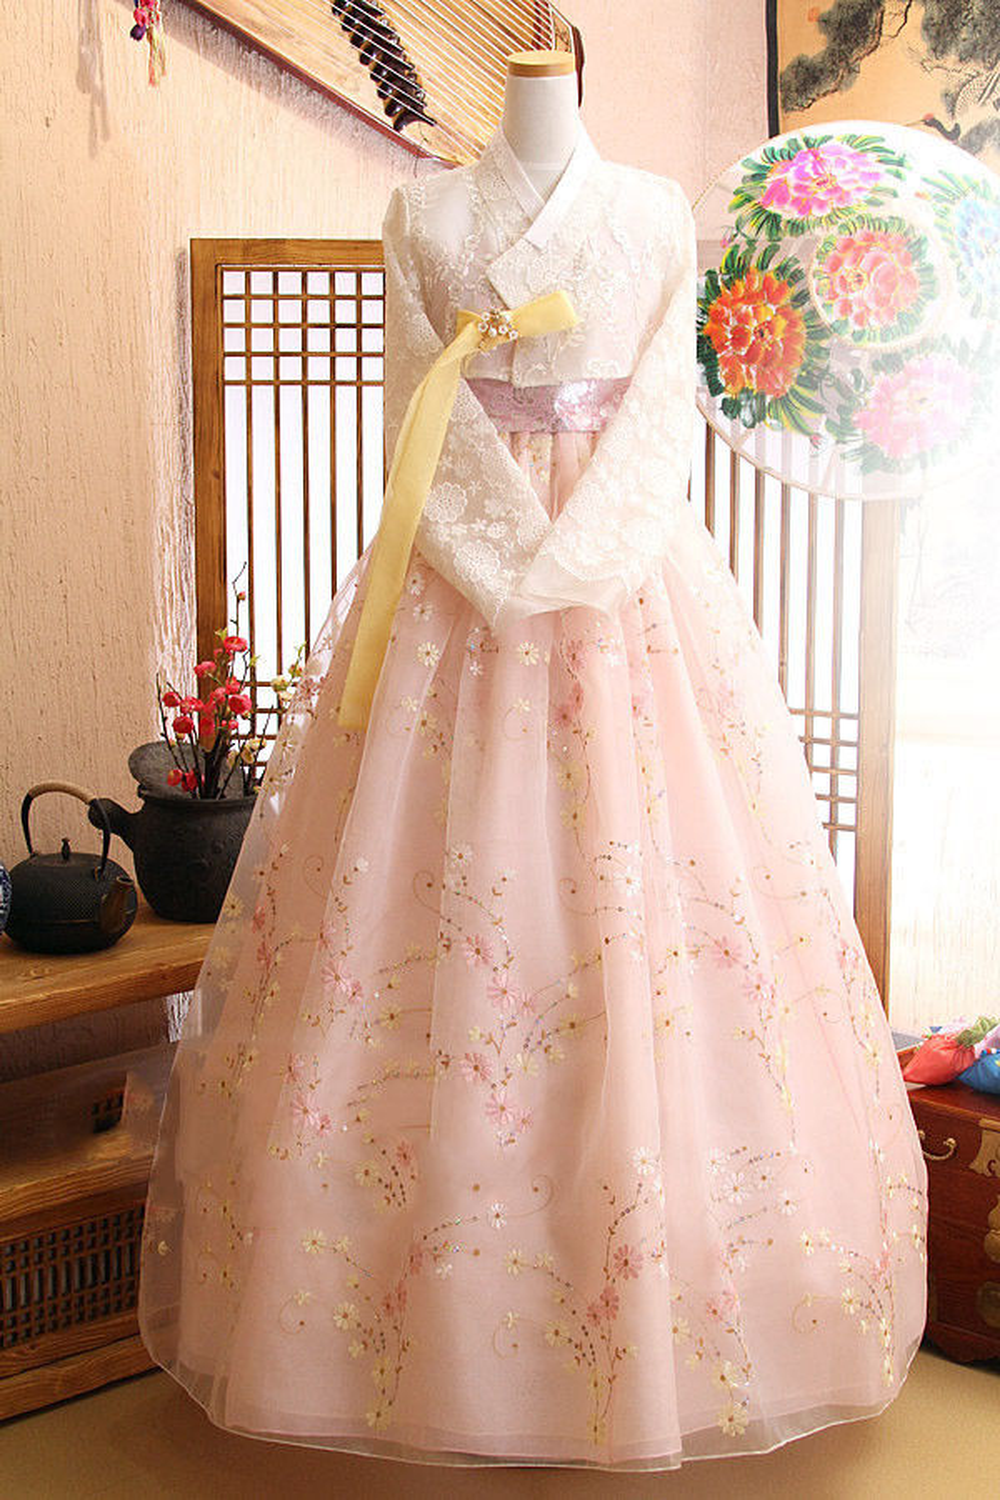 2020 Popular Women Hanbok Dress Korean Traditioanl Bride Wedding Fushion Lace Skirt Gfit